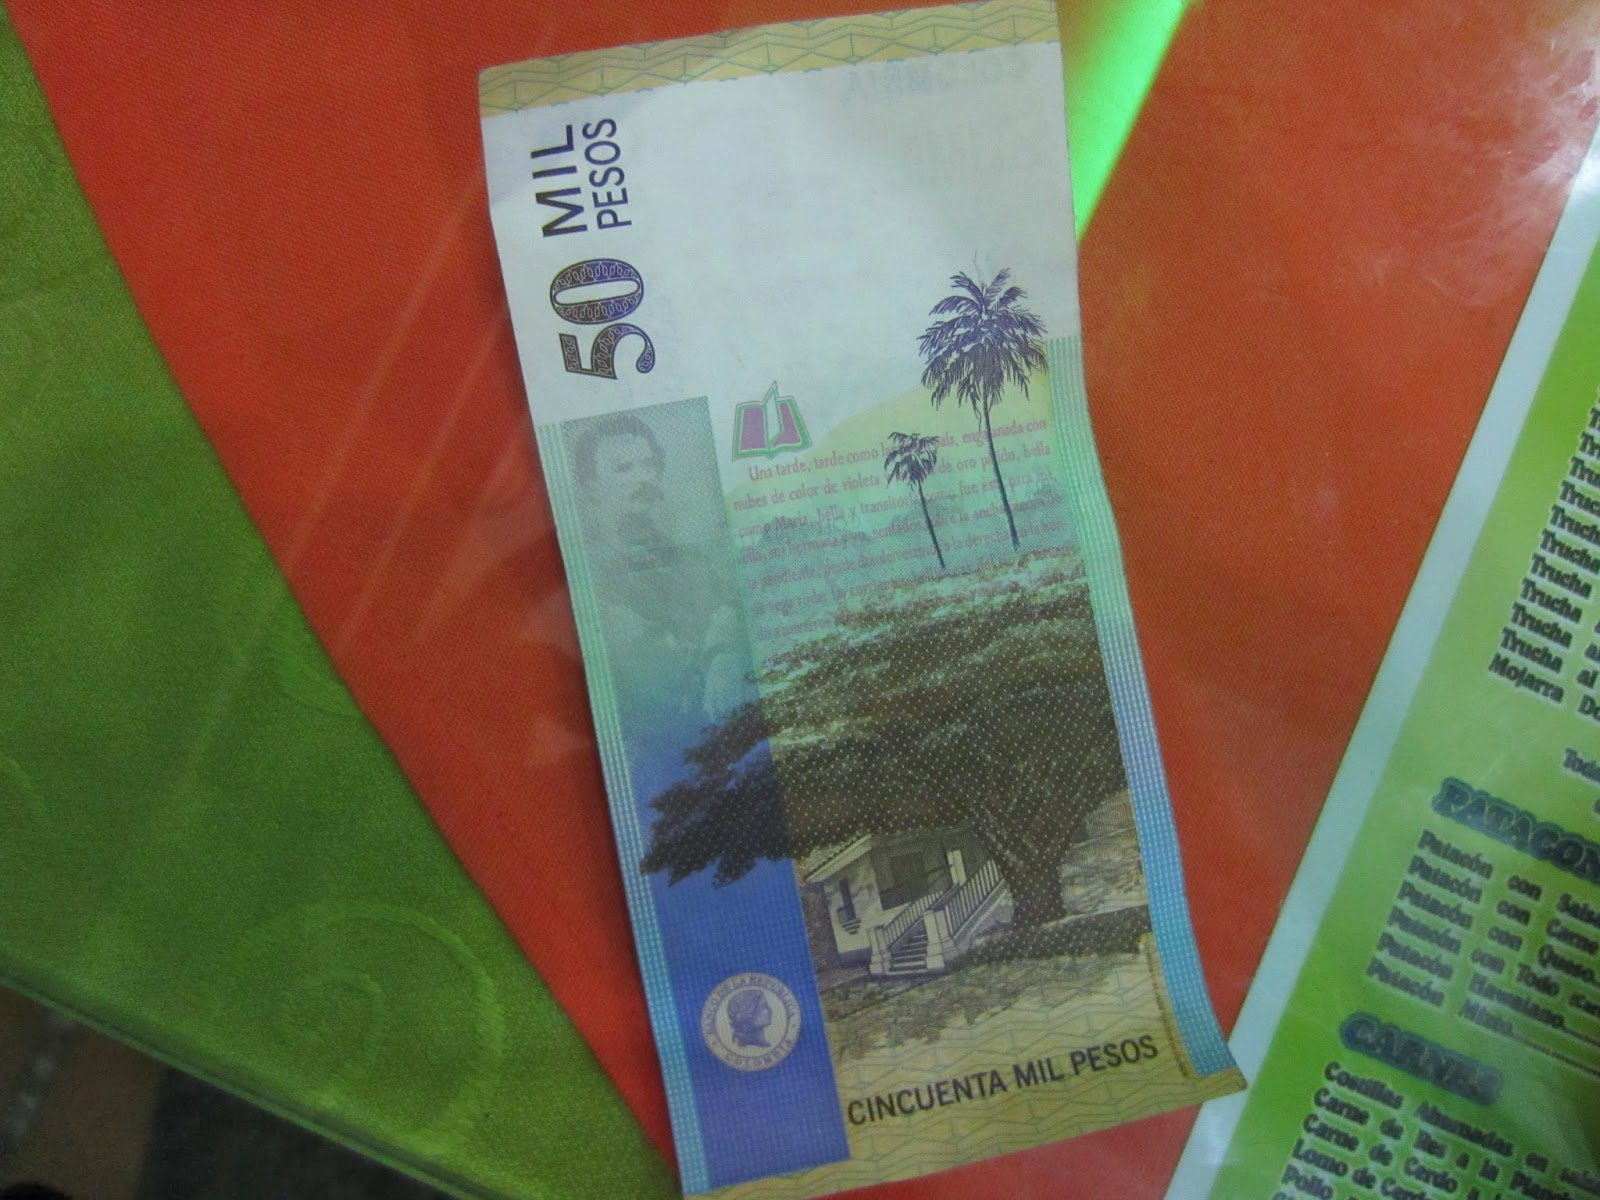 Wax palms are a symbol of Colombia, and are even pictured on the currency.